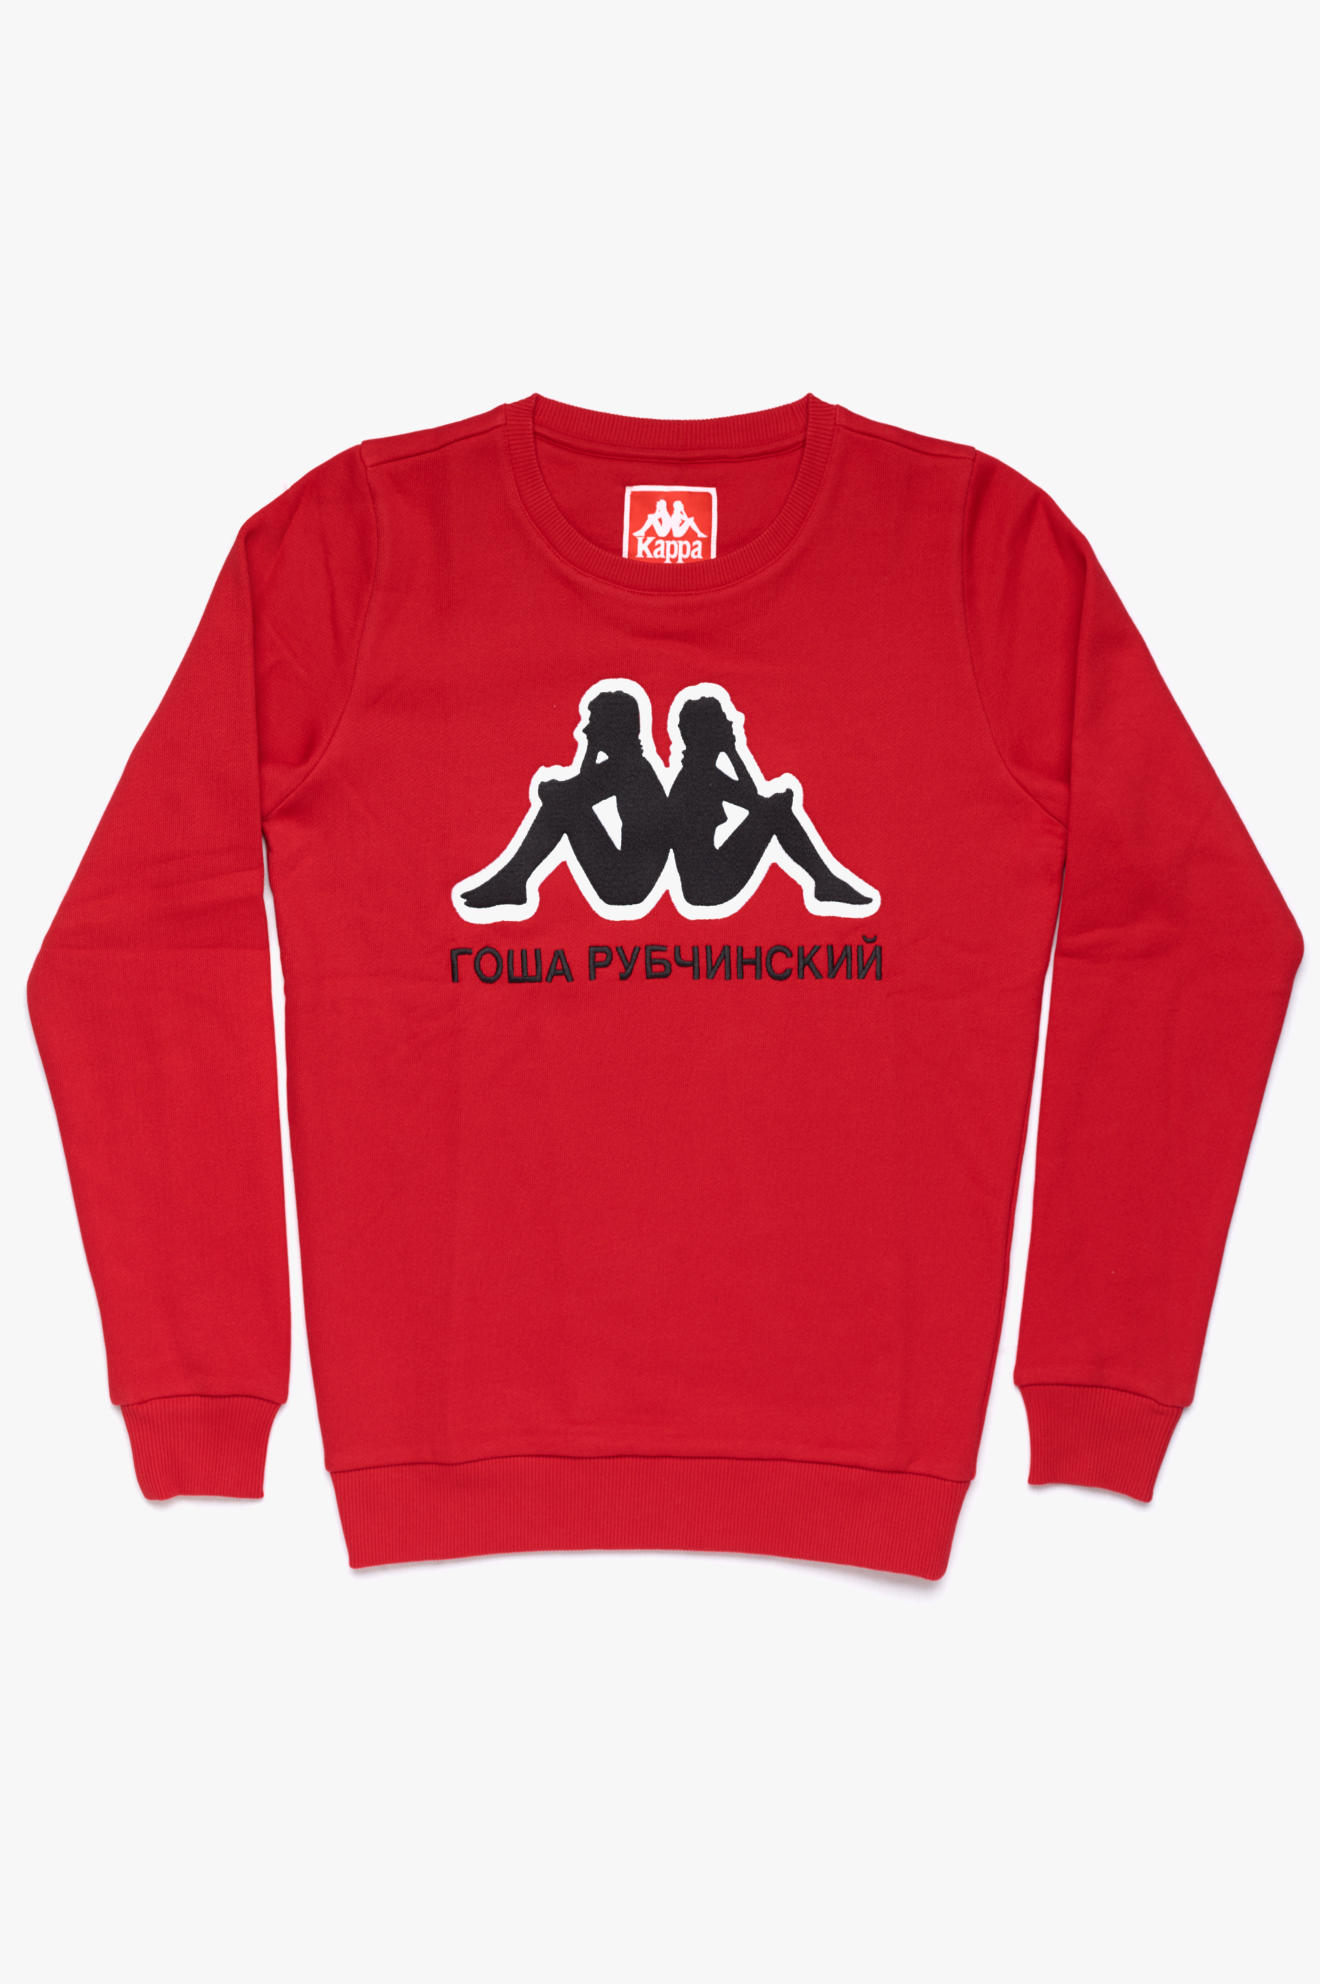 Kappa Sweatshirt Red